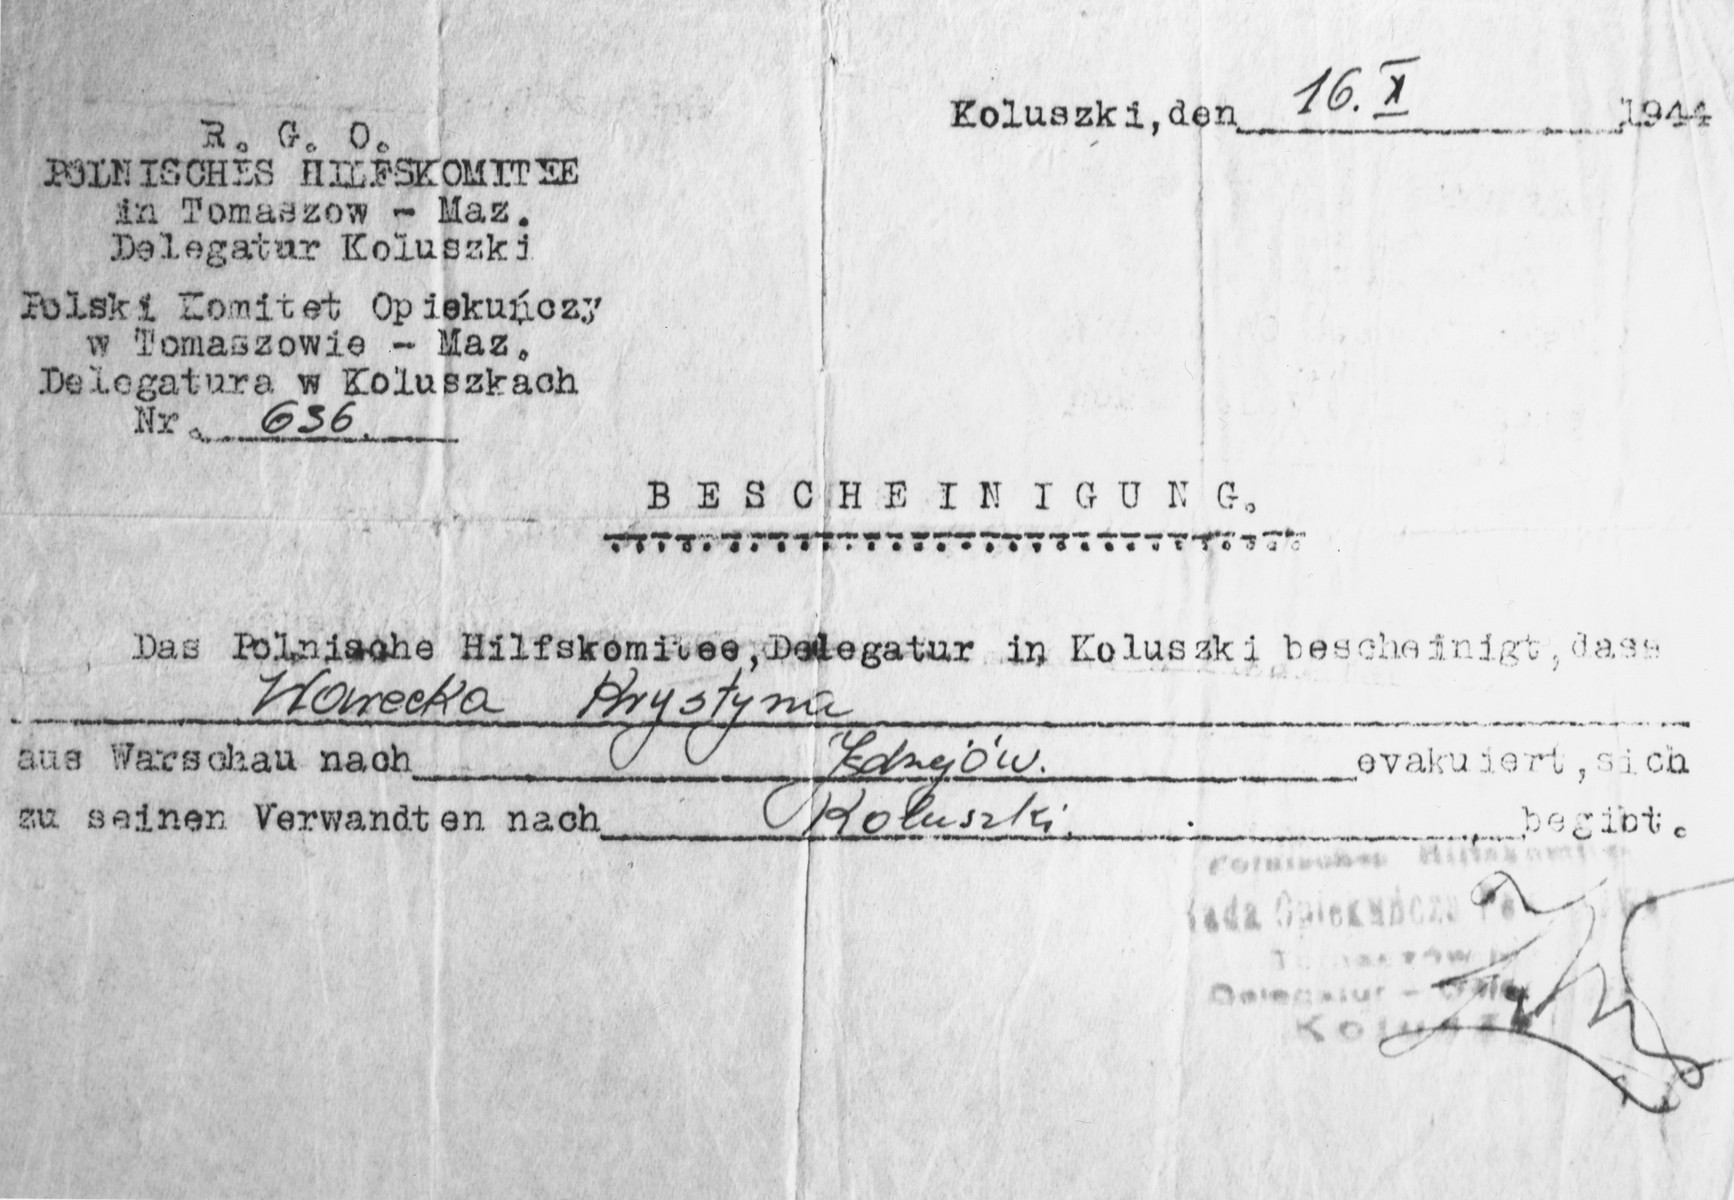 A certificate issued to Krystyna Warecka (Bianka Rozenman, the donor) by the Polish Welfare Committee in Koluszki, stating that the bearer was evacuated from Warsaw to Jedrzejow, but is allowed to join her family in Koluszki.    The certificate was issued on October 16, 1944, during the mass evacuation of the population from Warsaw, following the Polish uprising in August 1944.